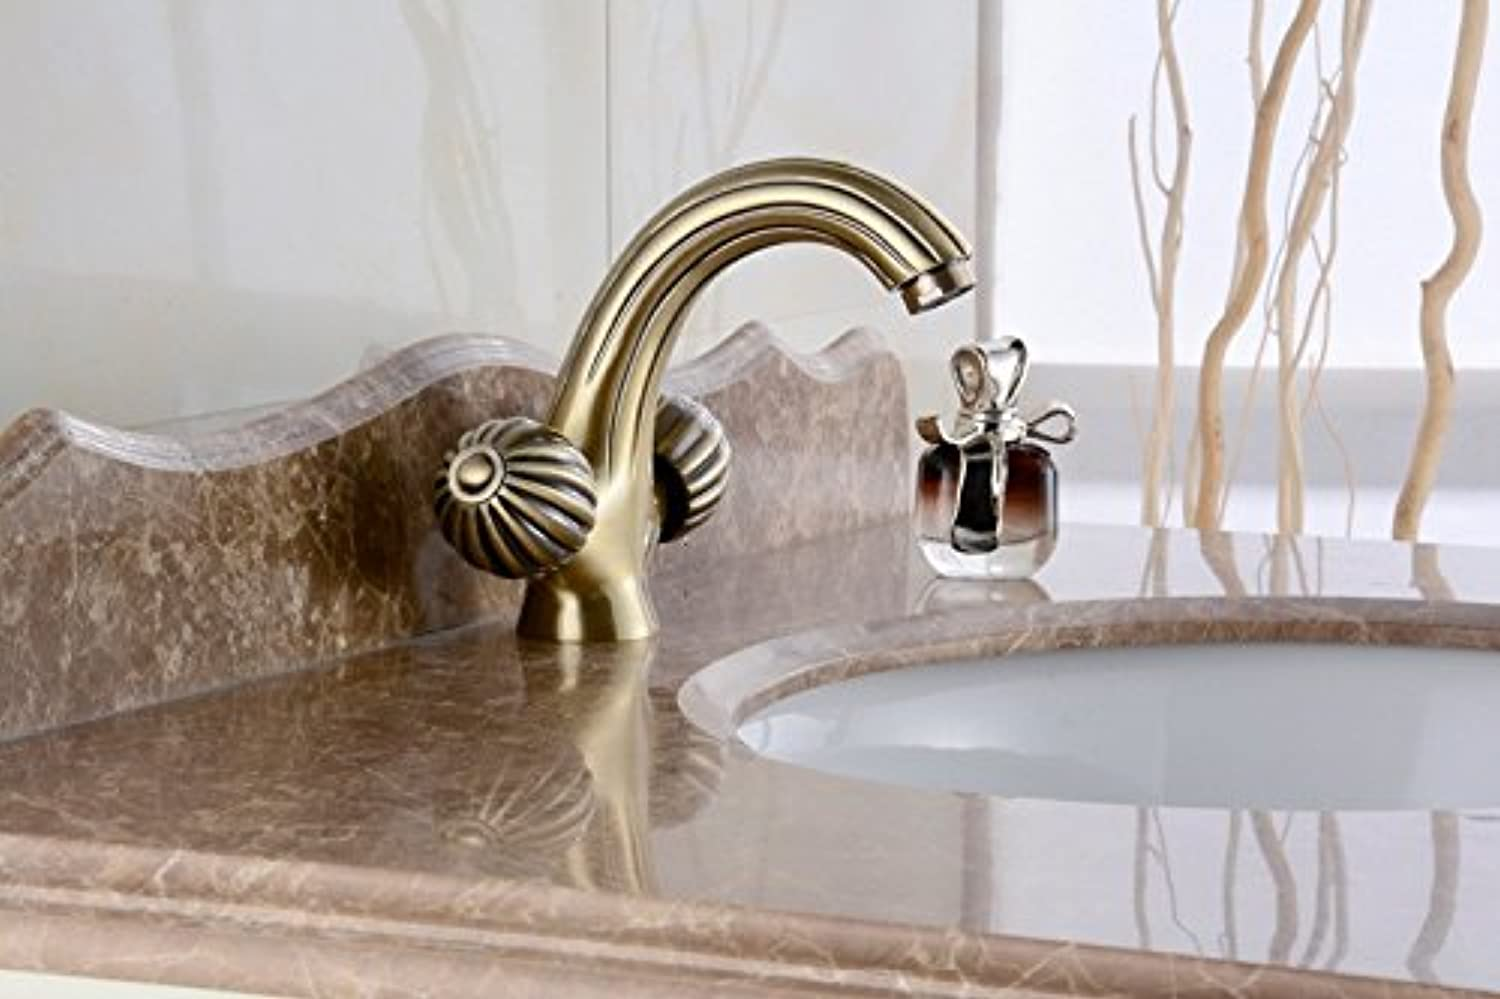 ZHFC- Green bronze double handle hot and cold faucet bathroom faucet